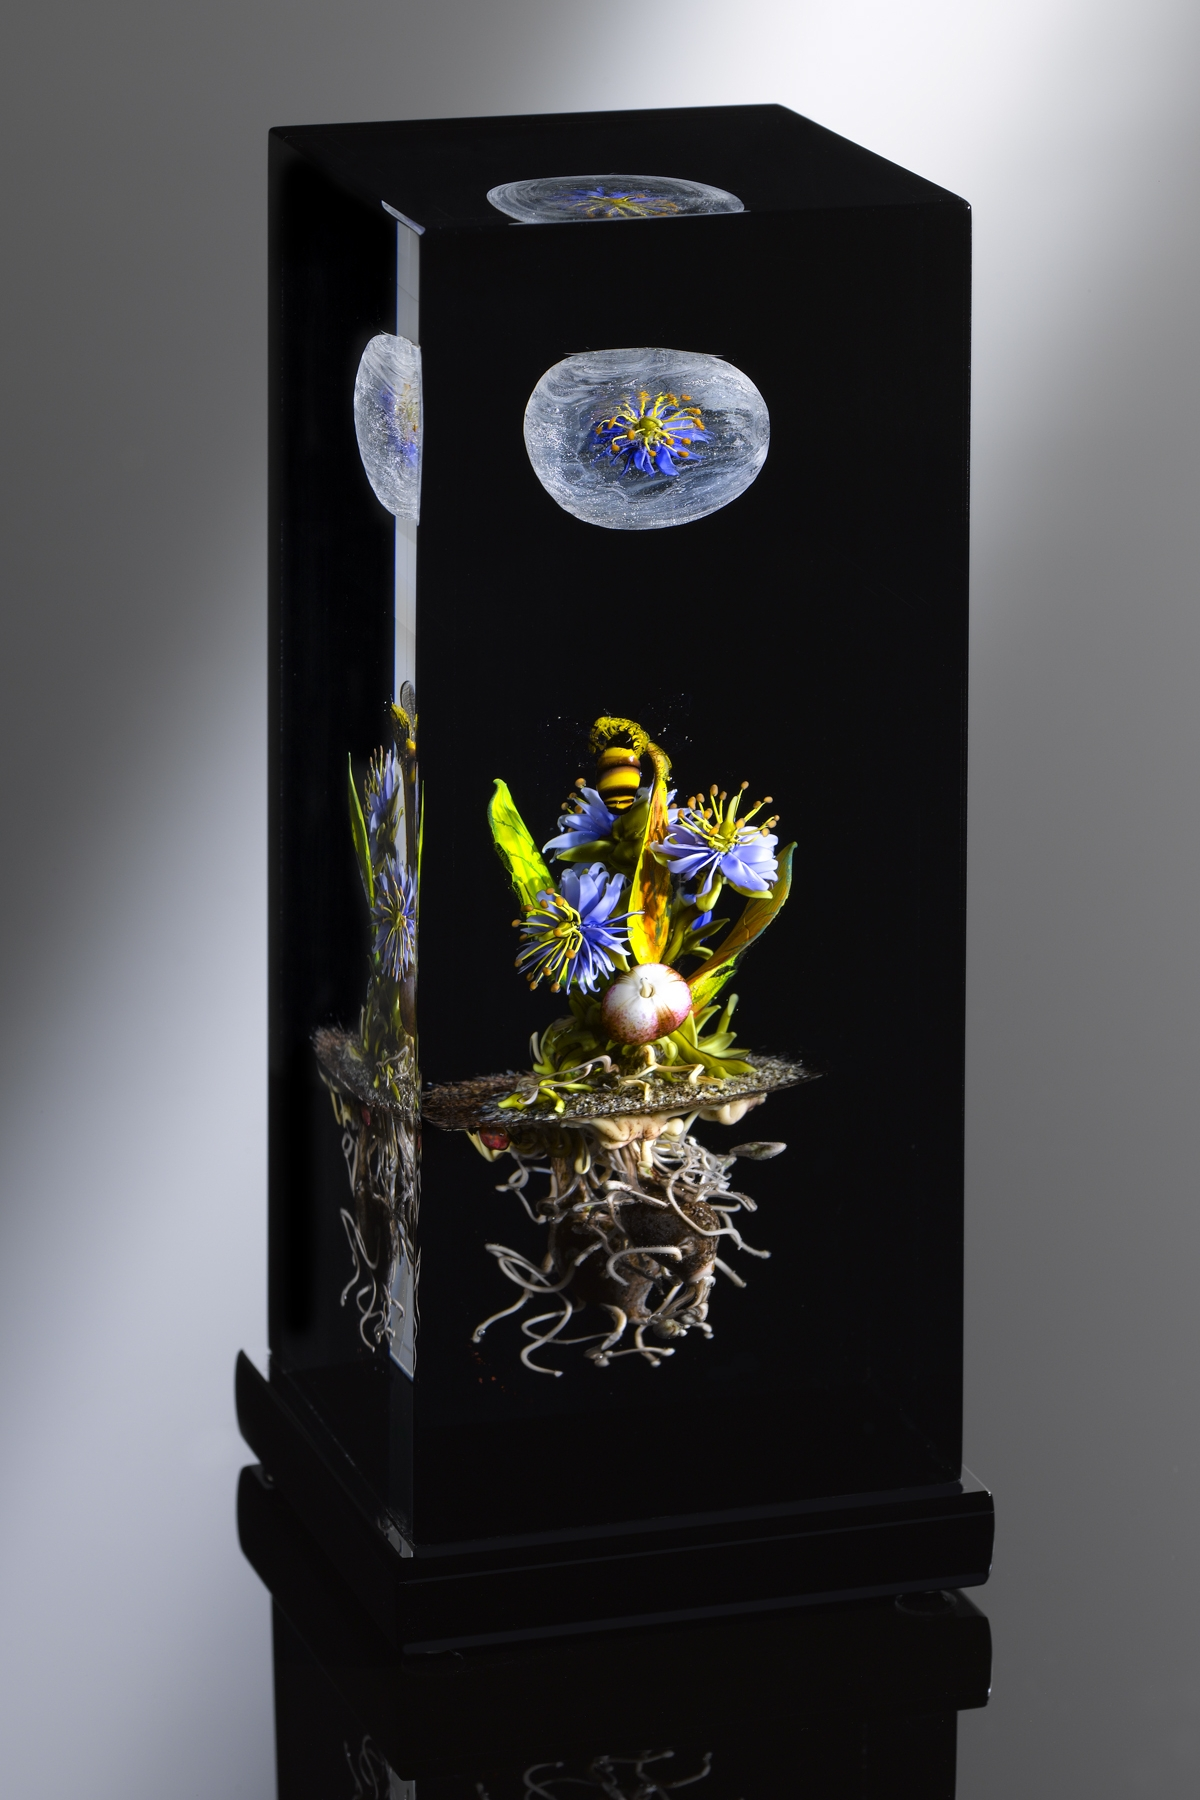 2009 Pineland's Veiled Orb Column; H. 7.0 inches x L. 3.0 inches x W. 3.0 inches